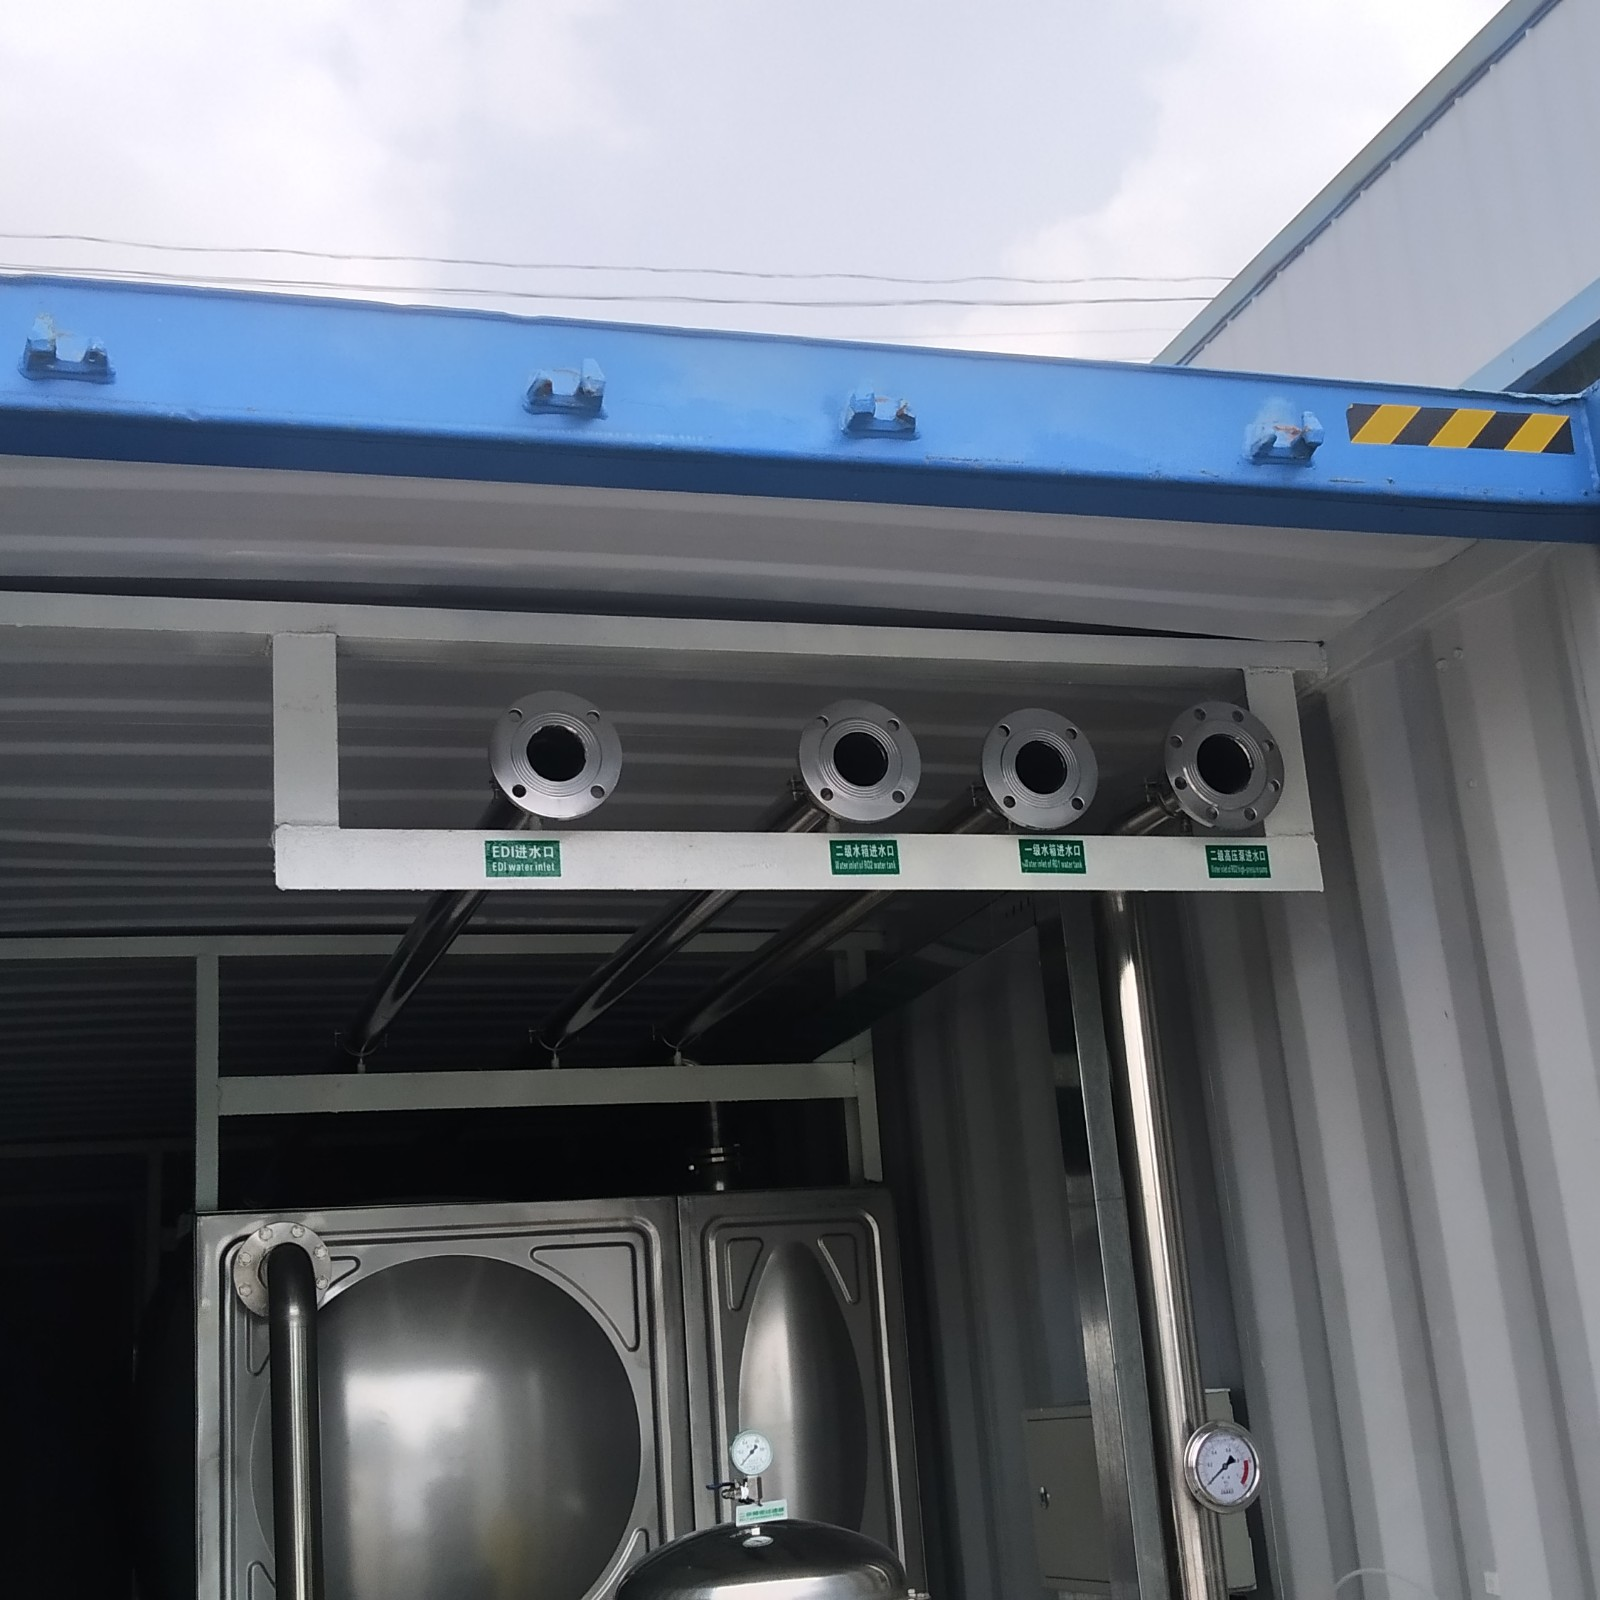 Mobile container water treatment equipment7.jpg